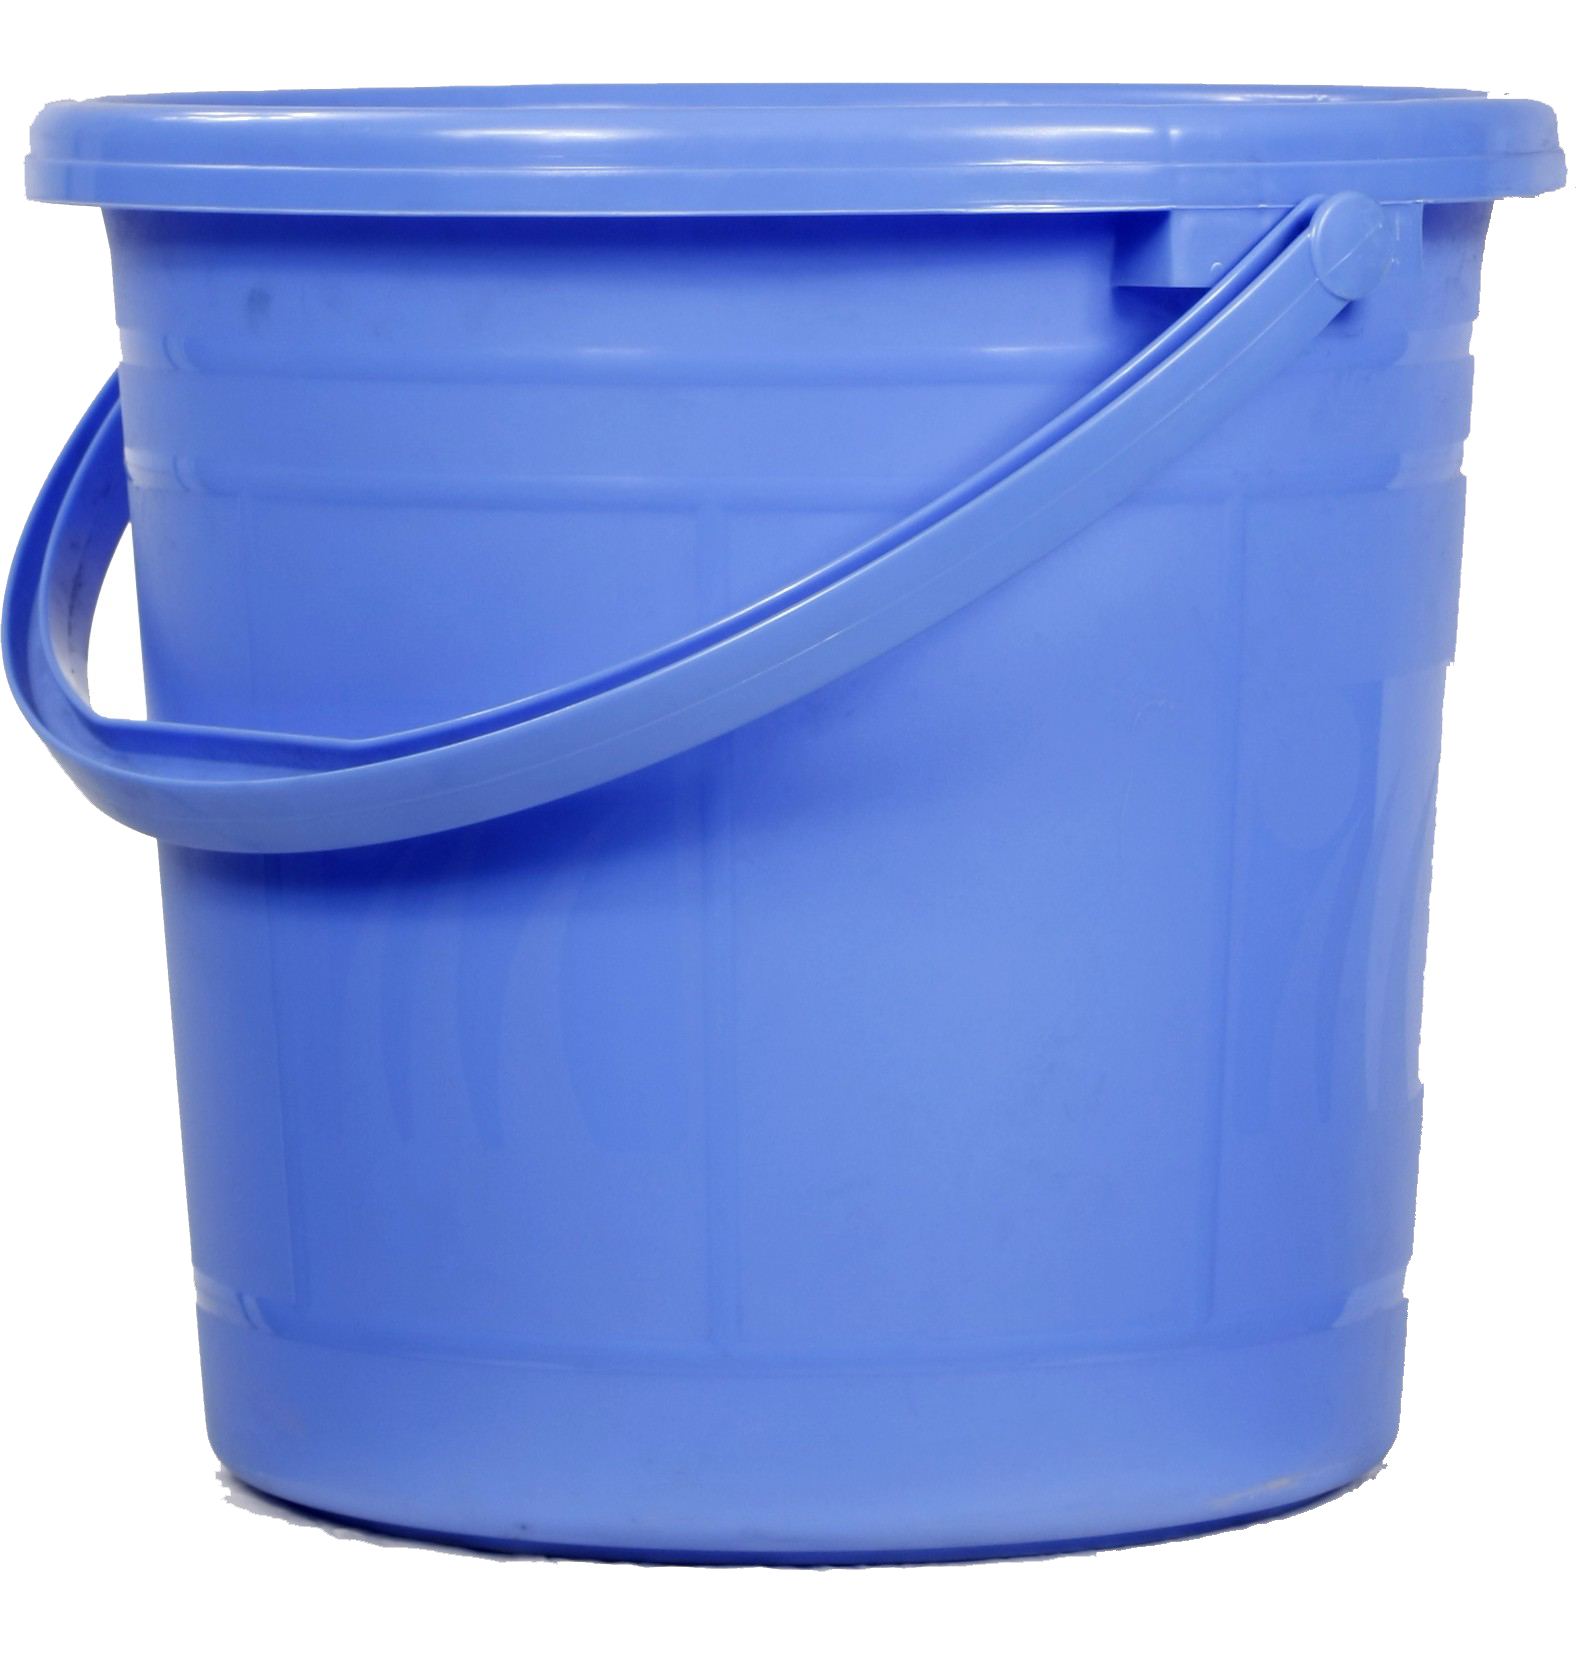 Bucket Free Download PNG - Bucket HD PNG